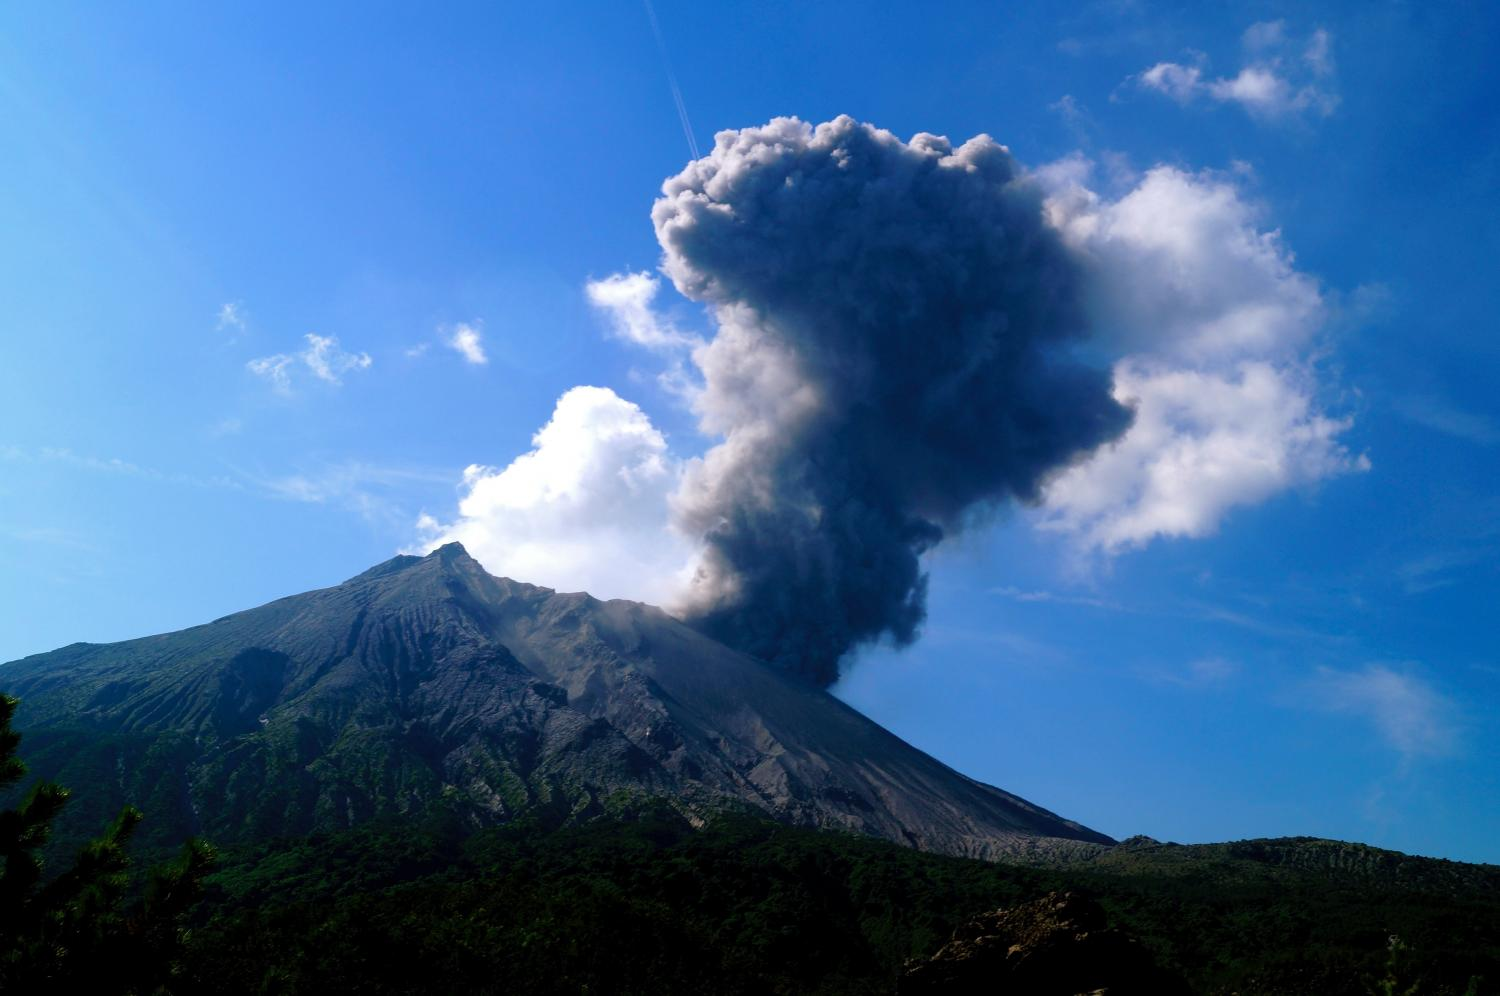 Scientists Fear Active Volcano Near Nuclear Plant Could See Major Eruption Soon